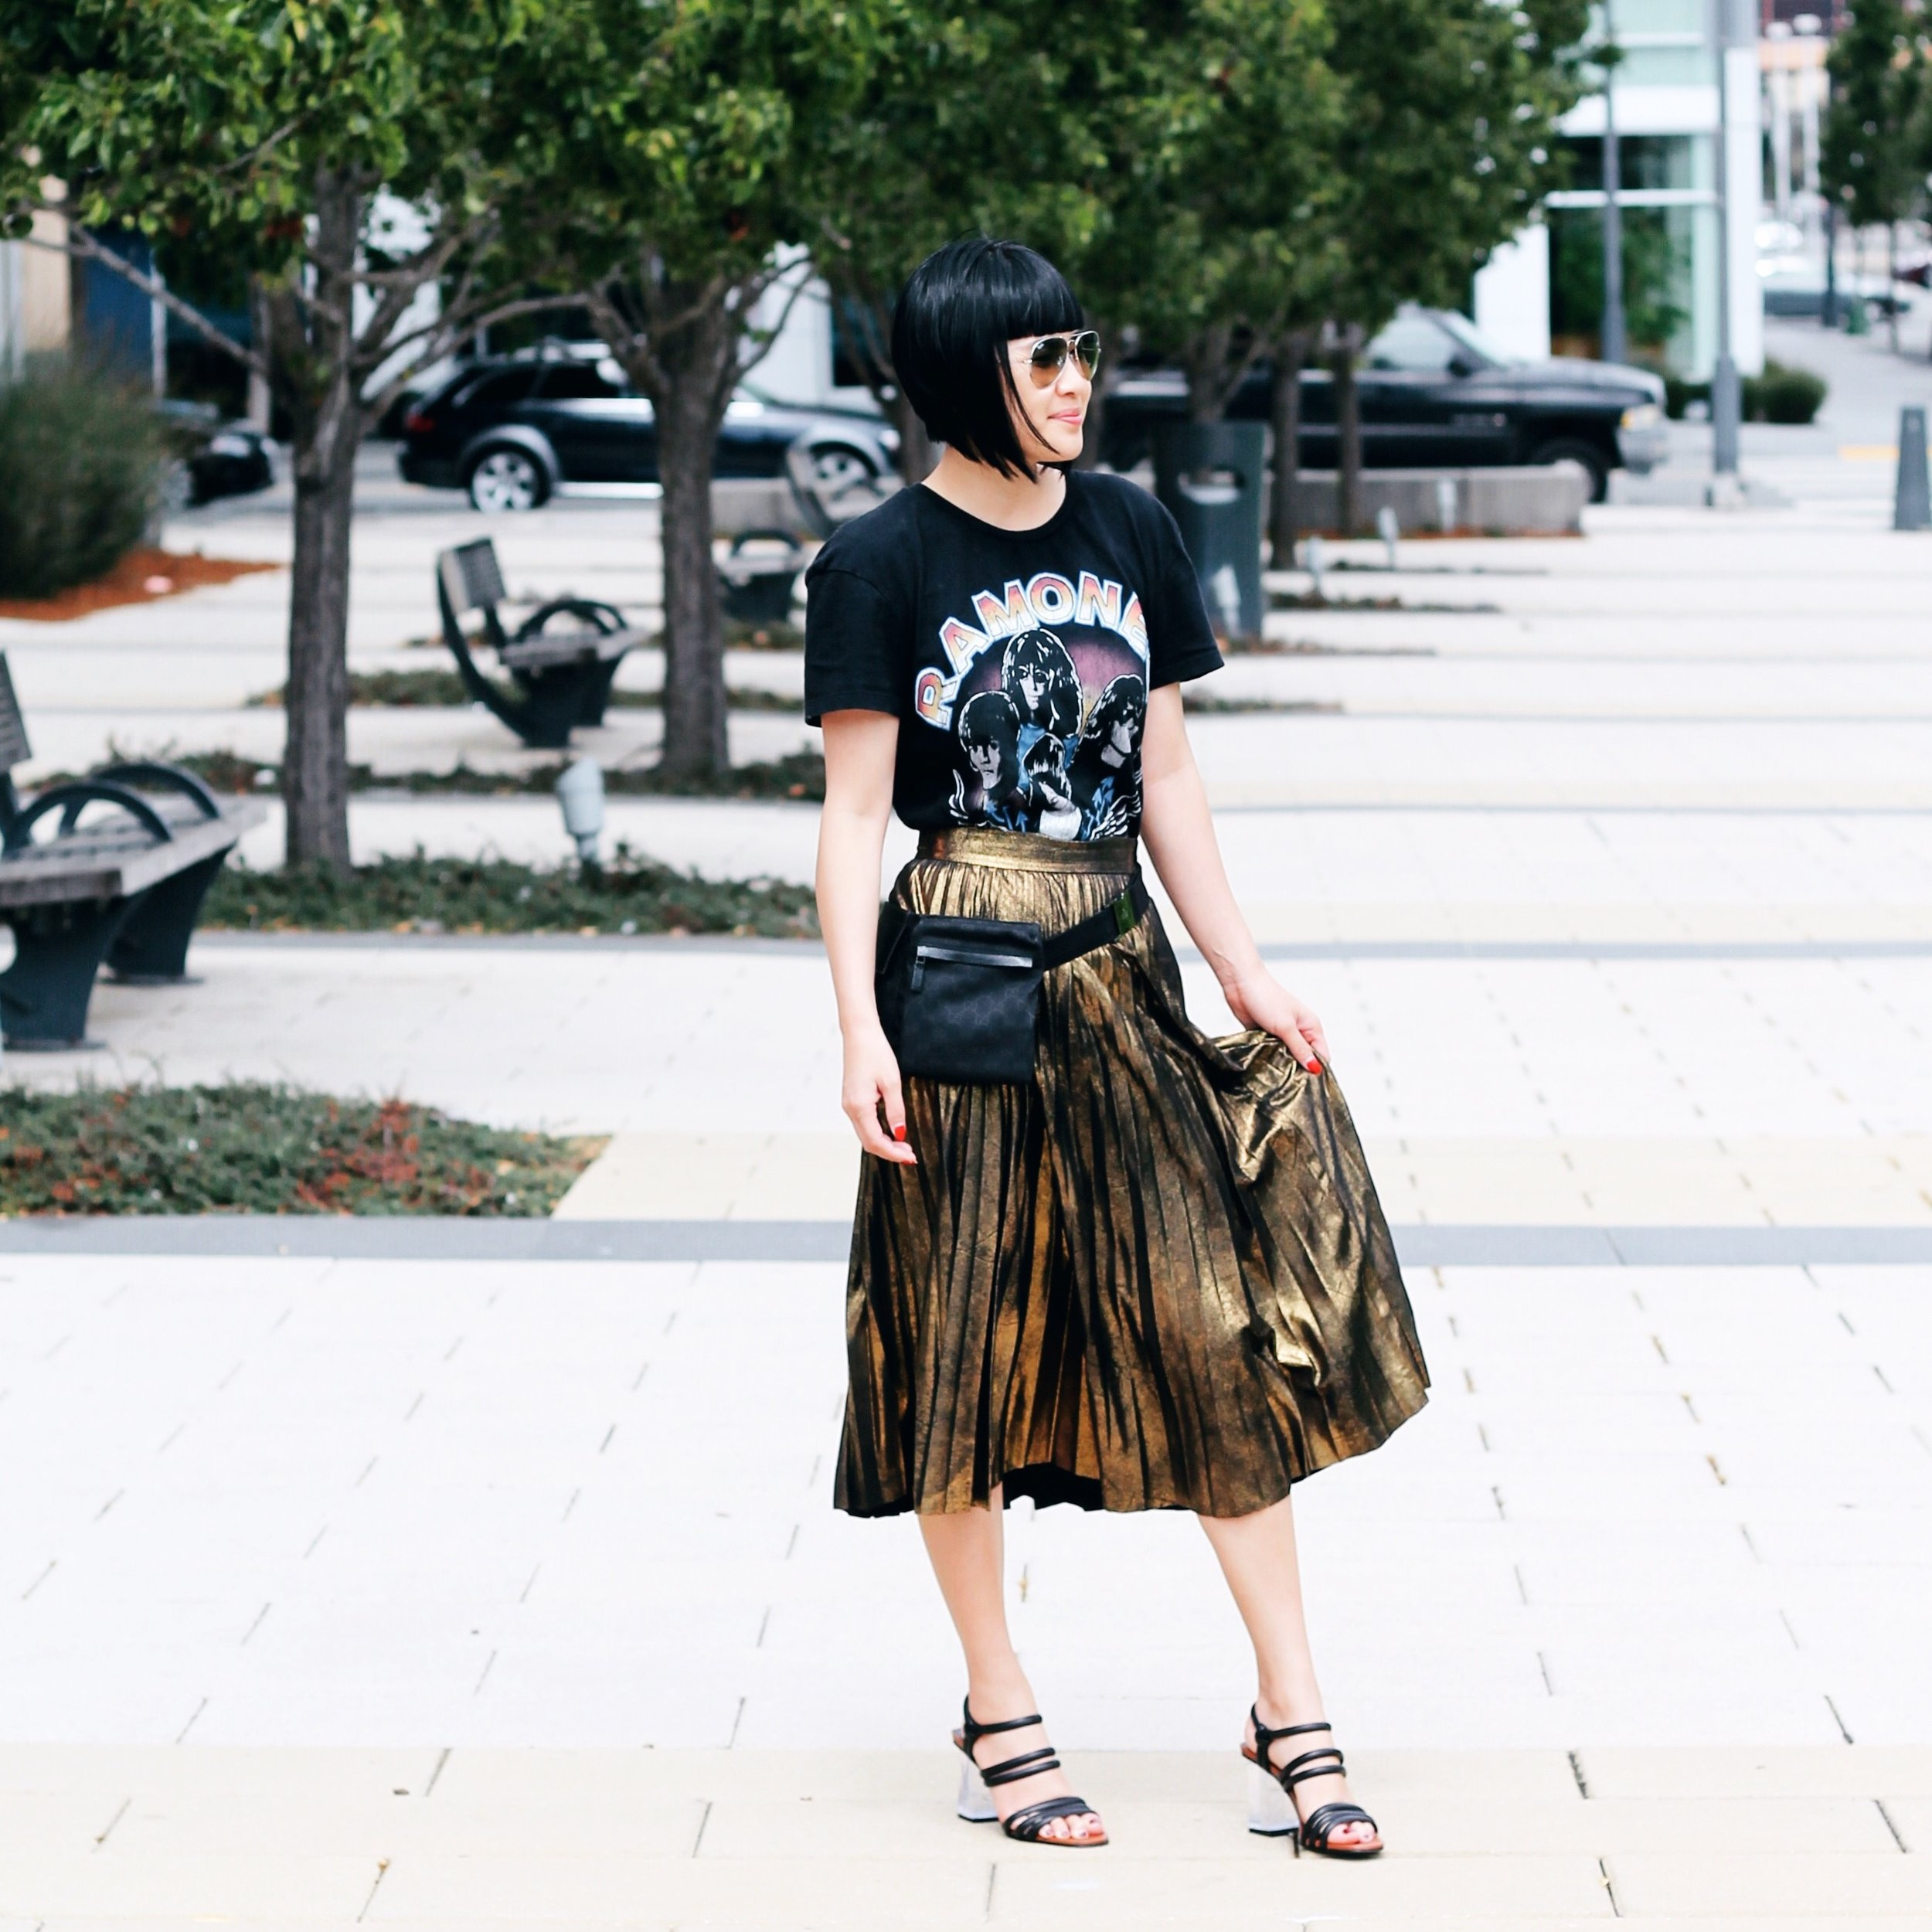 Zara tee, skirt, and shoes, Gucci fanny pack, Ray-Ban sunglasses